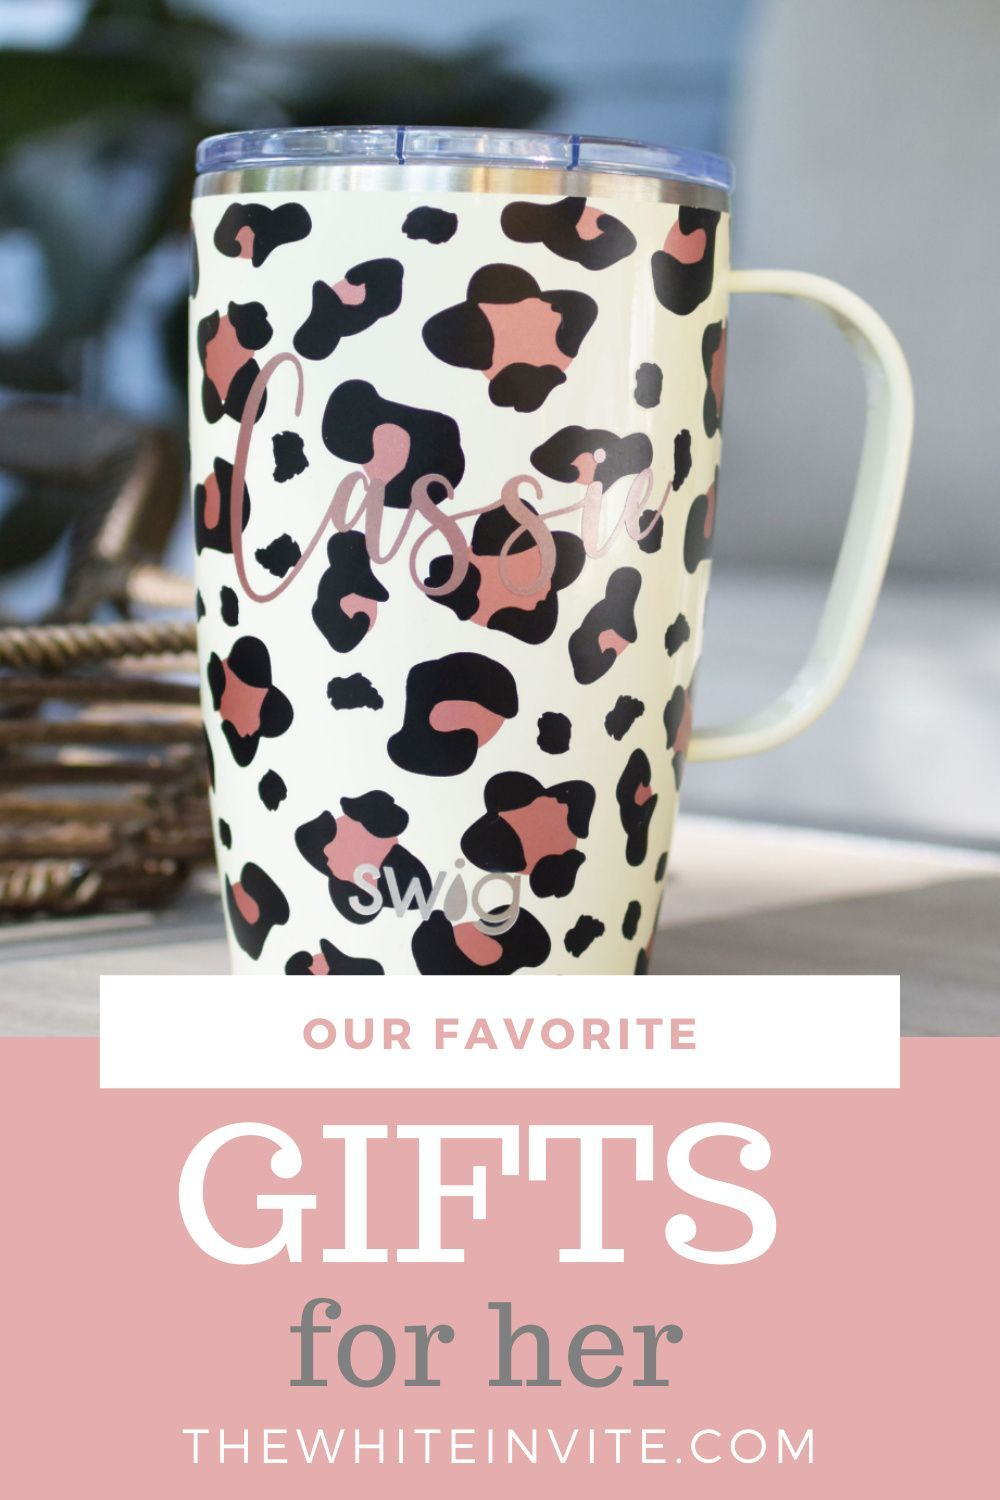 Swig Personalized Coffee Mug Luxy Leopard Bridesmaid Gifts Unique Gifts In A Mug Personalized Coffee Mugs